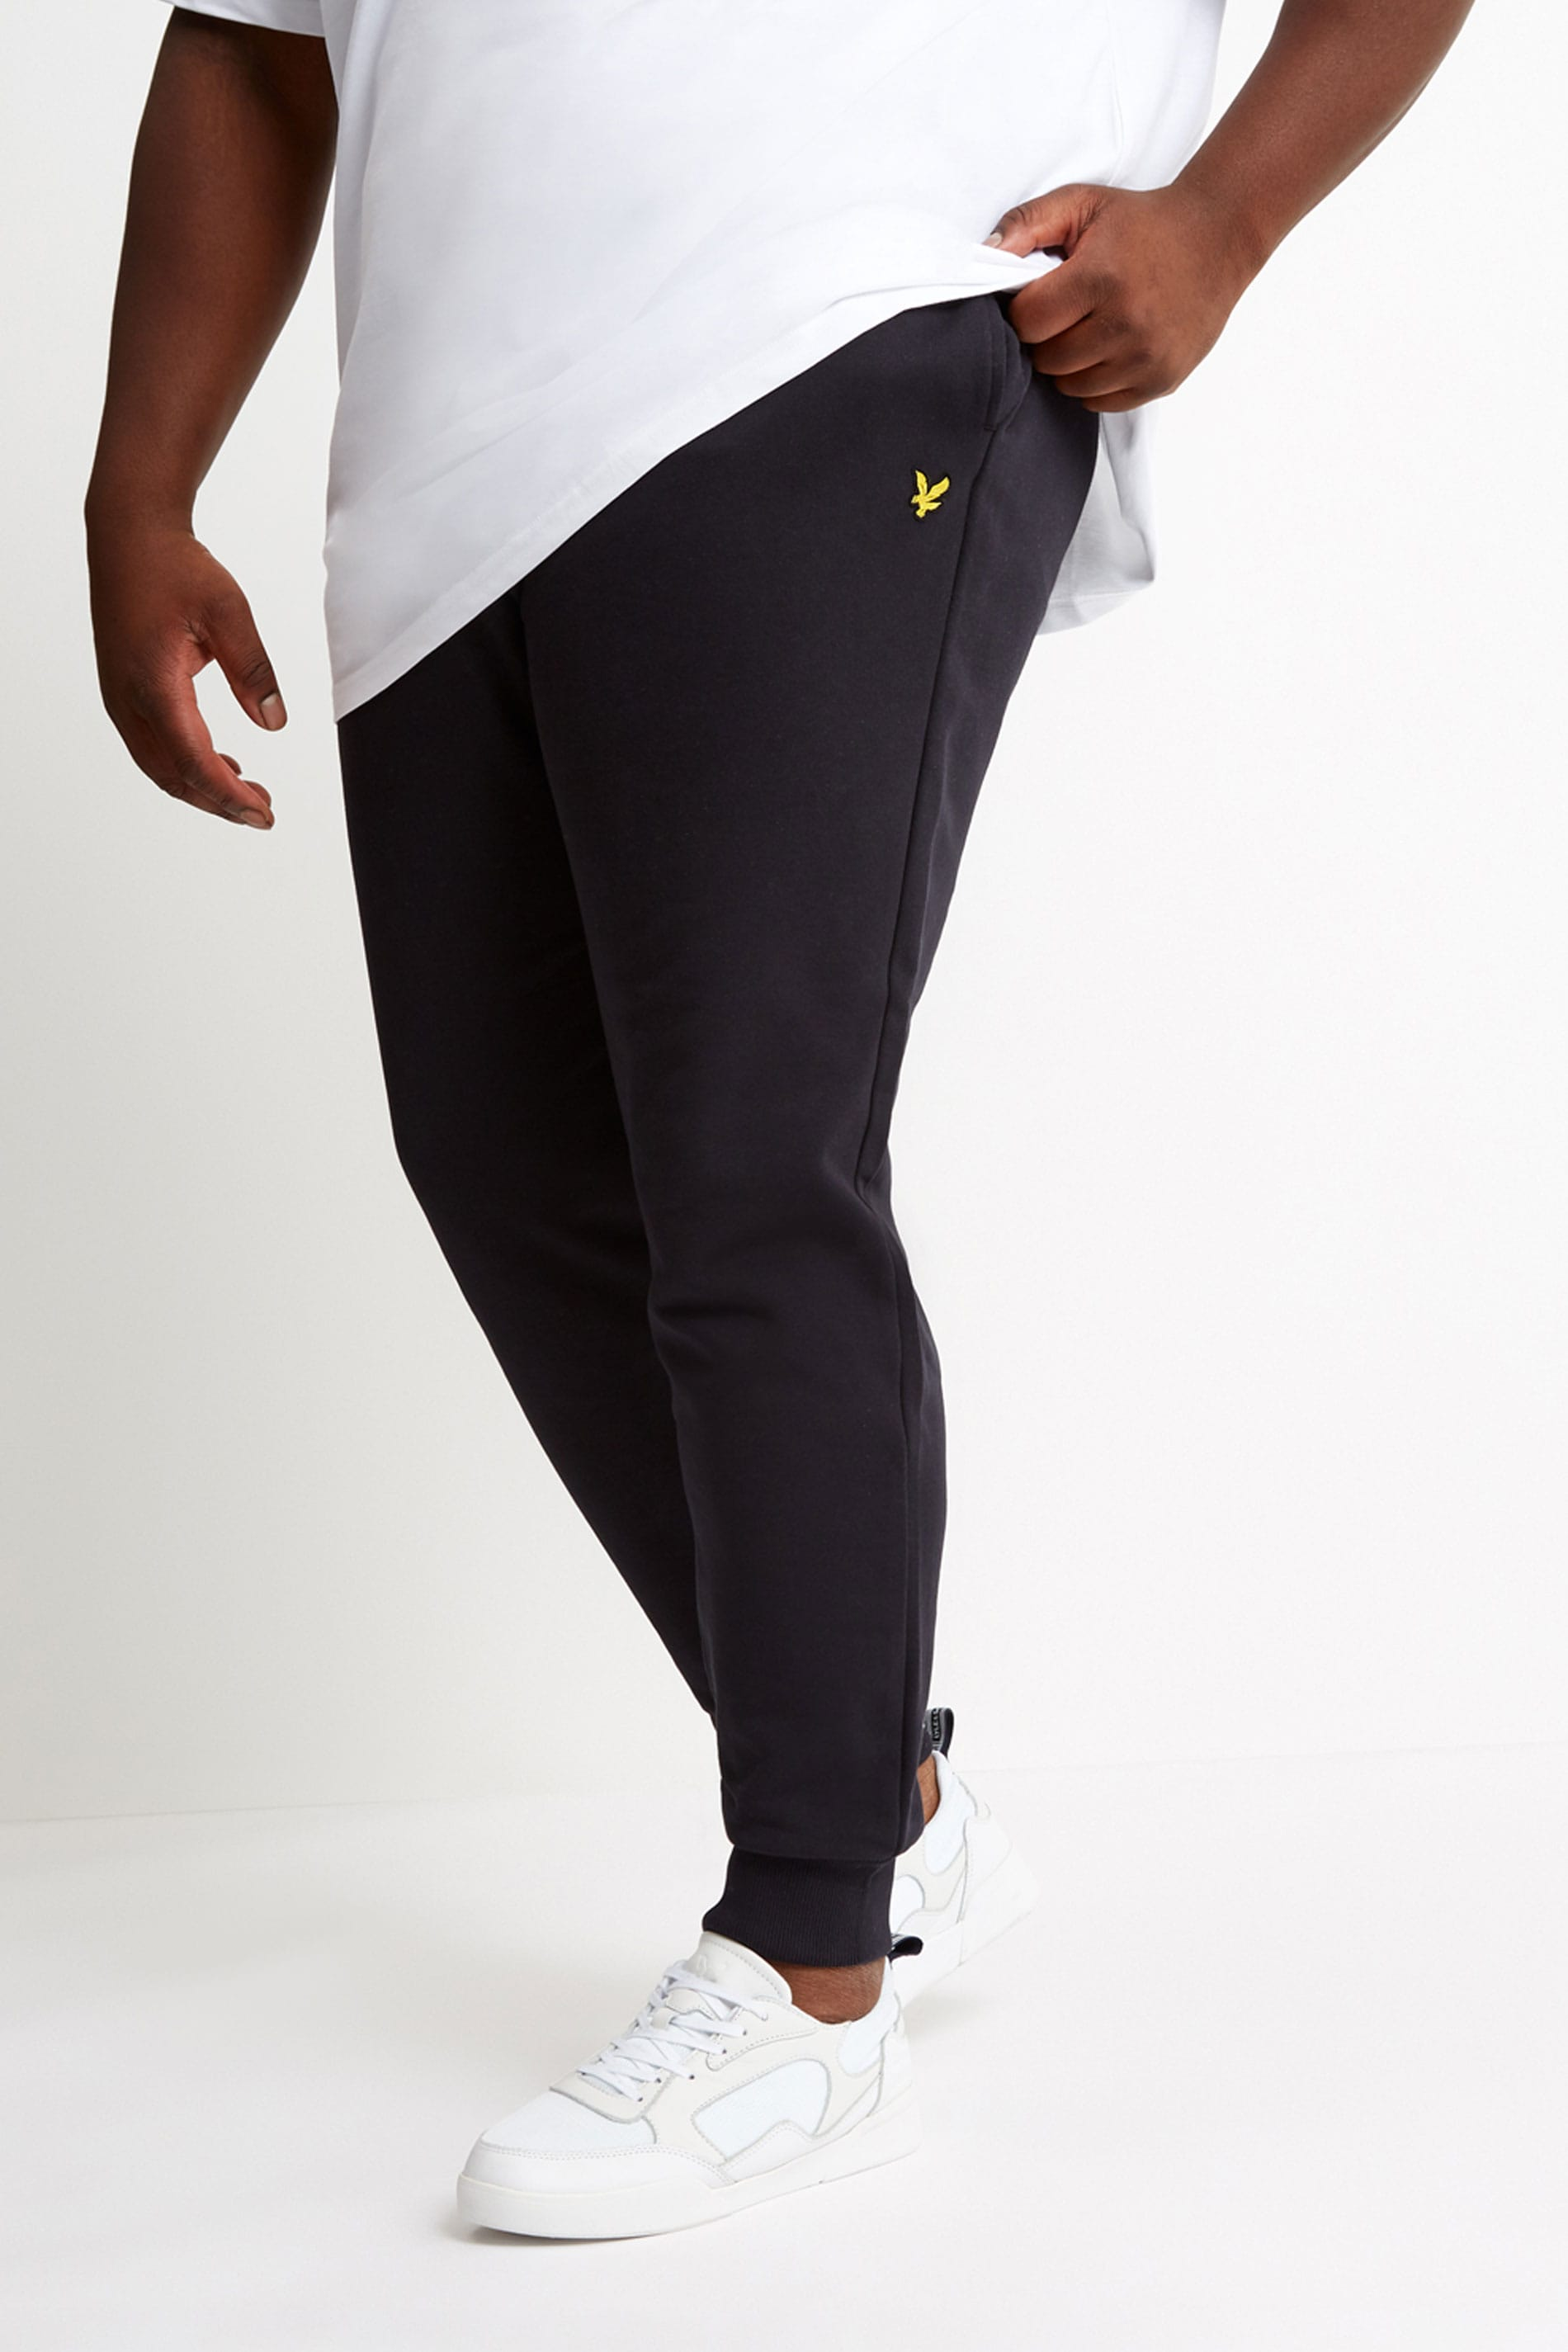 LYLE & SCOTT Black Skinny Joggers